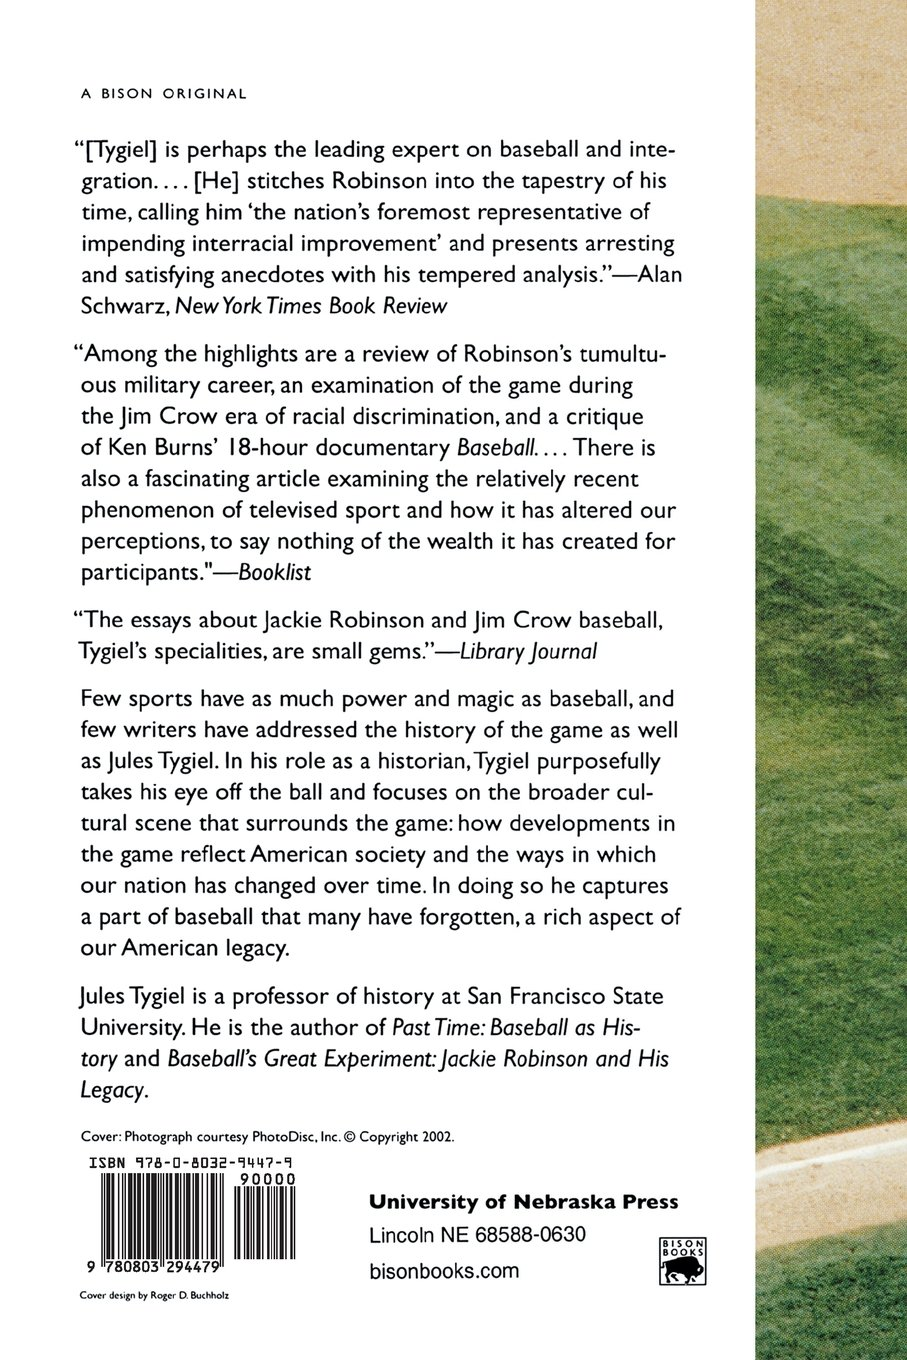 Essay On Business Management Extra Bases Reflections On Jackie Robinson Race And Baseball History  Jules Tygiel  Amazoncom Books Topics Of Essays For High School Students also Essays And Term Papers Extra Bases Reflections On Jackie Robinson Race And Baseball  Proposal For An Essay